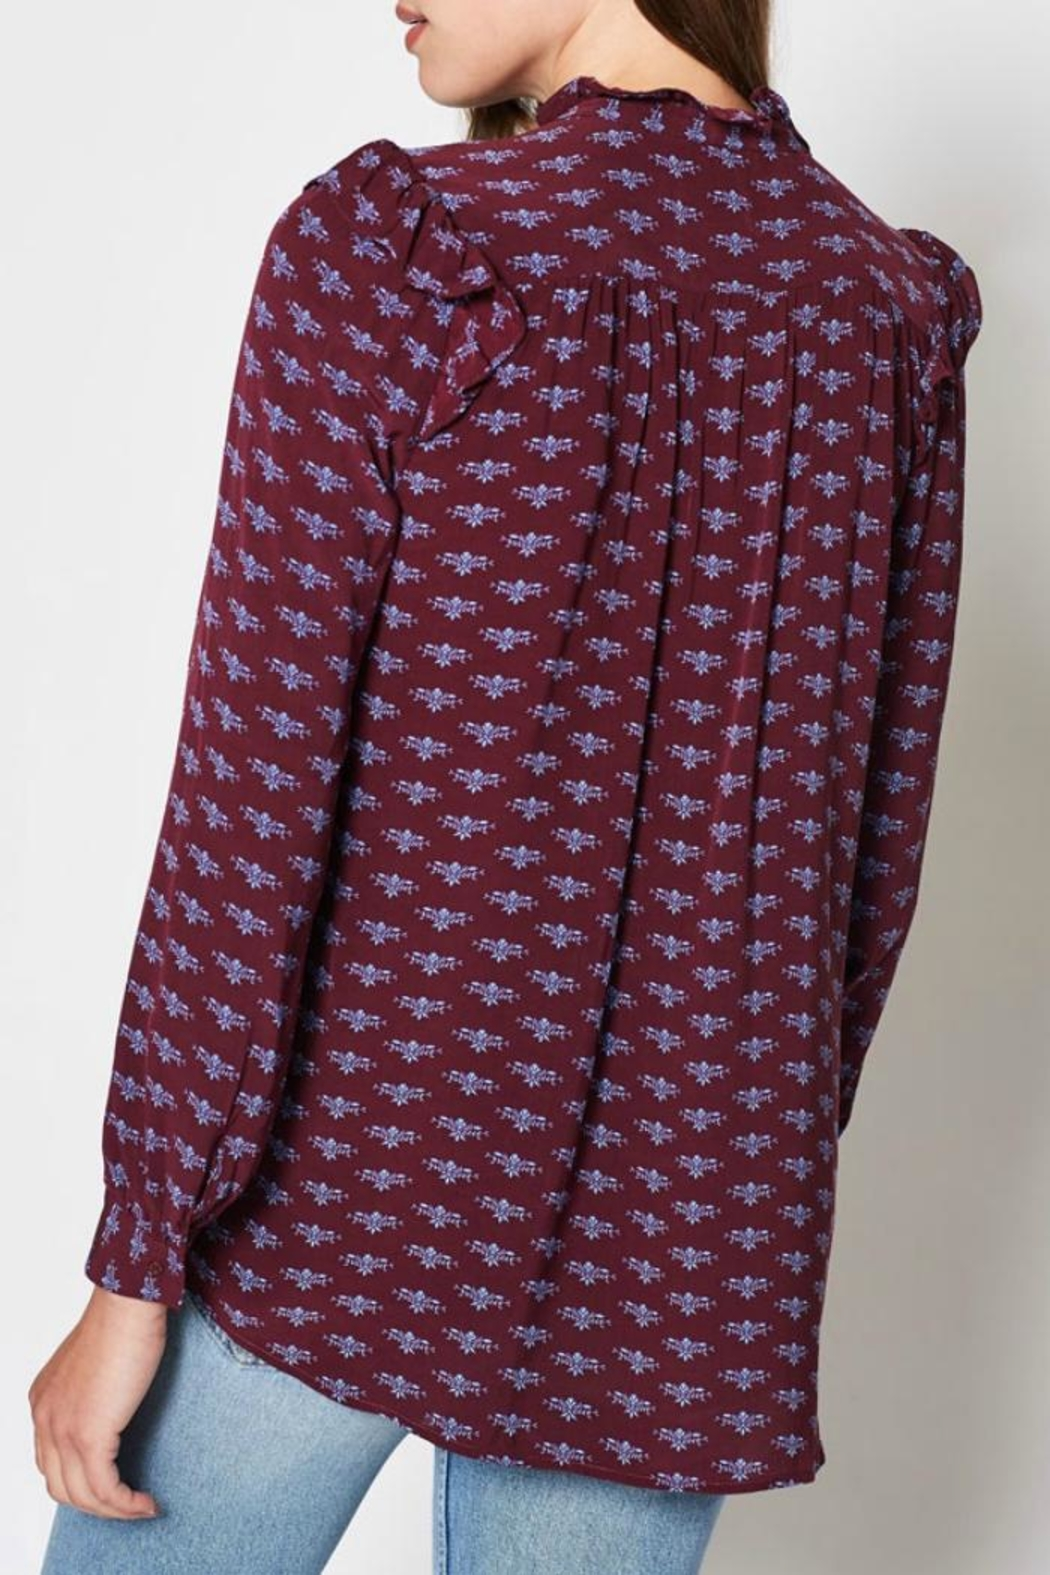 Joie Mintee F Top - Front Full Image